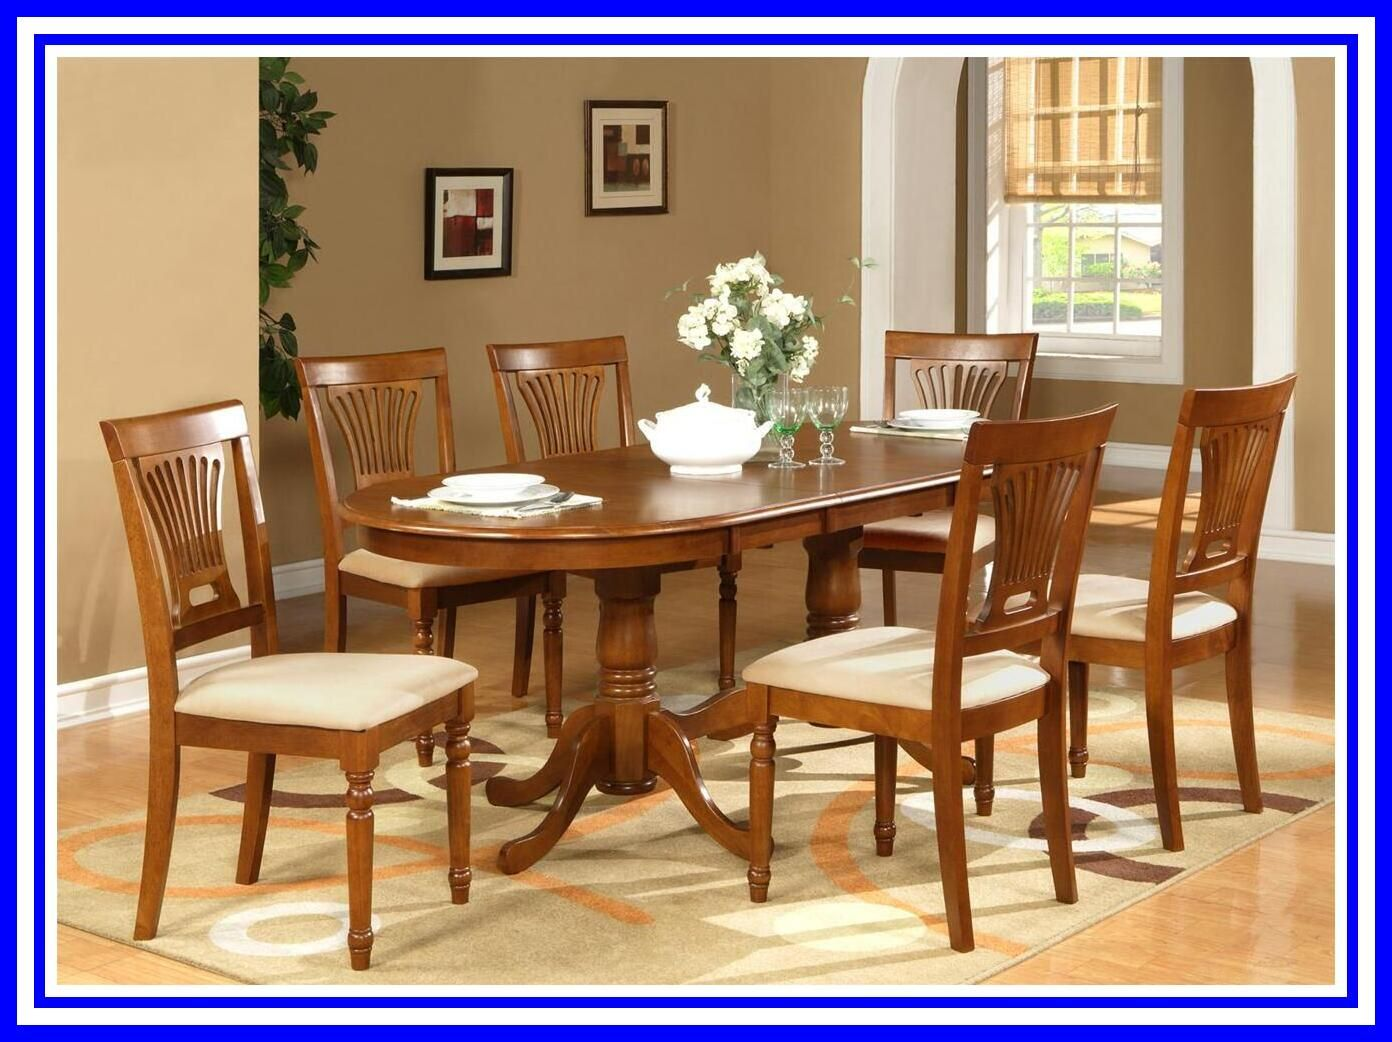 76 Reference Of Wooden Oval Dining Table And Chairs In 2020 Cheap Dining Room Chairs Dining Table Oval Table Dining